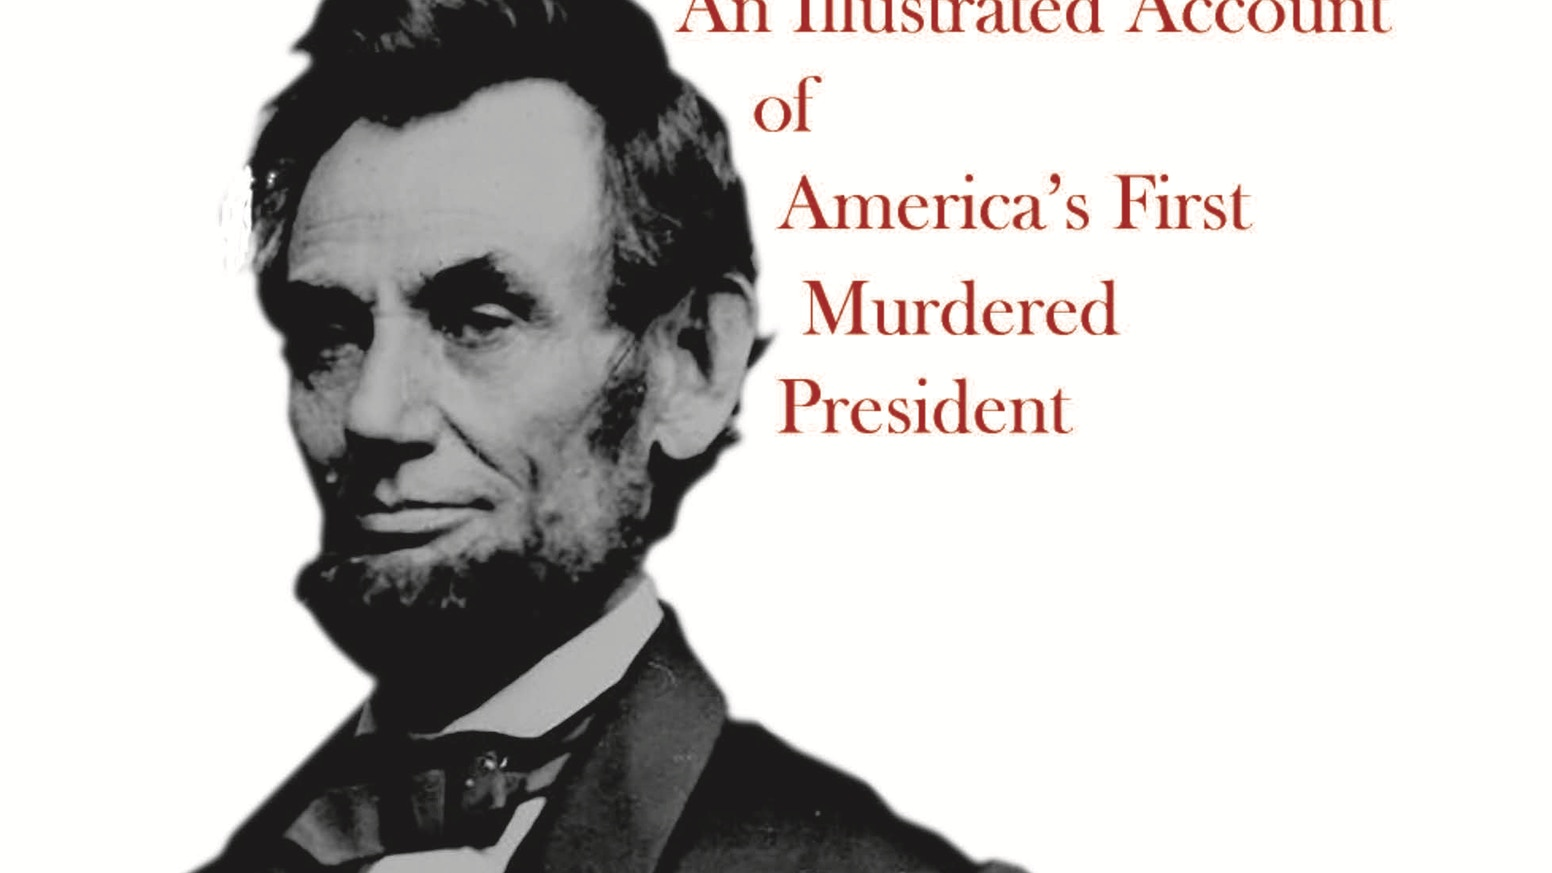 account of the assassination of president abraham lincoln April 14, 1865 marked the first successful assassination attempt on a sitting us president abraham lincoln was 56 years old at the time, starting his second term as president.